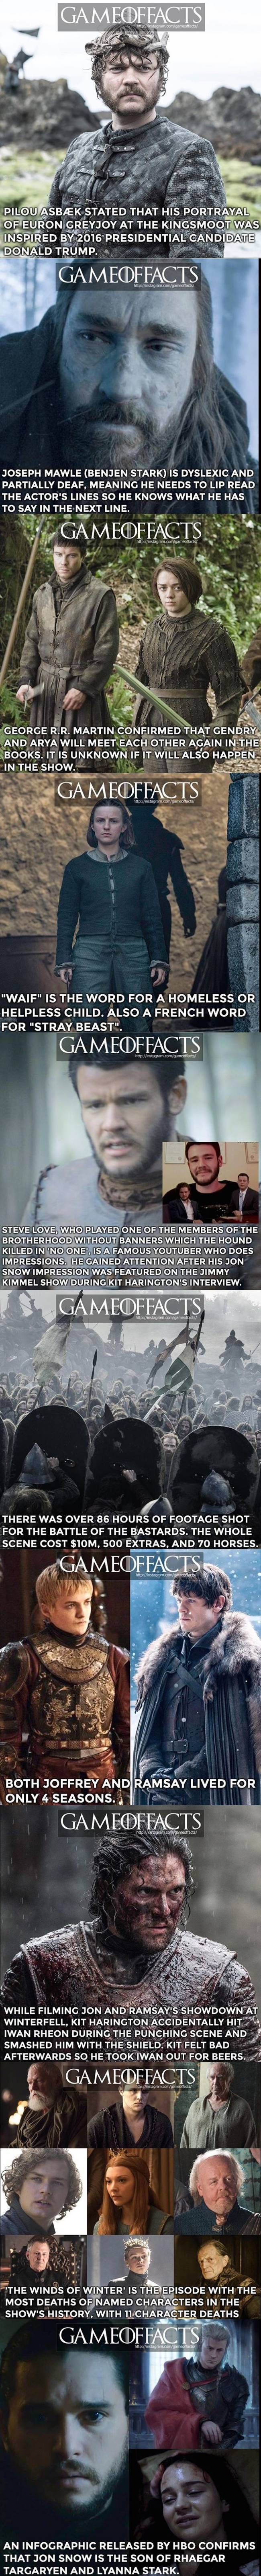 The whole Kingsmoot scene reminded me of our 2016 election and this confirms why. Euron Greyjoy is Trump! I knew it!!